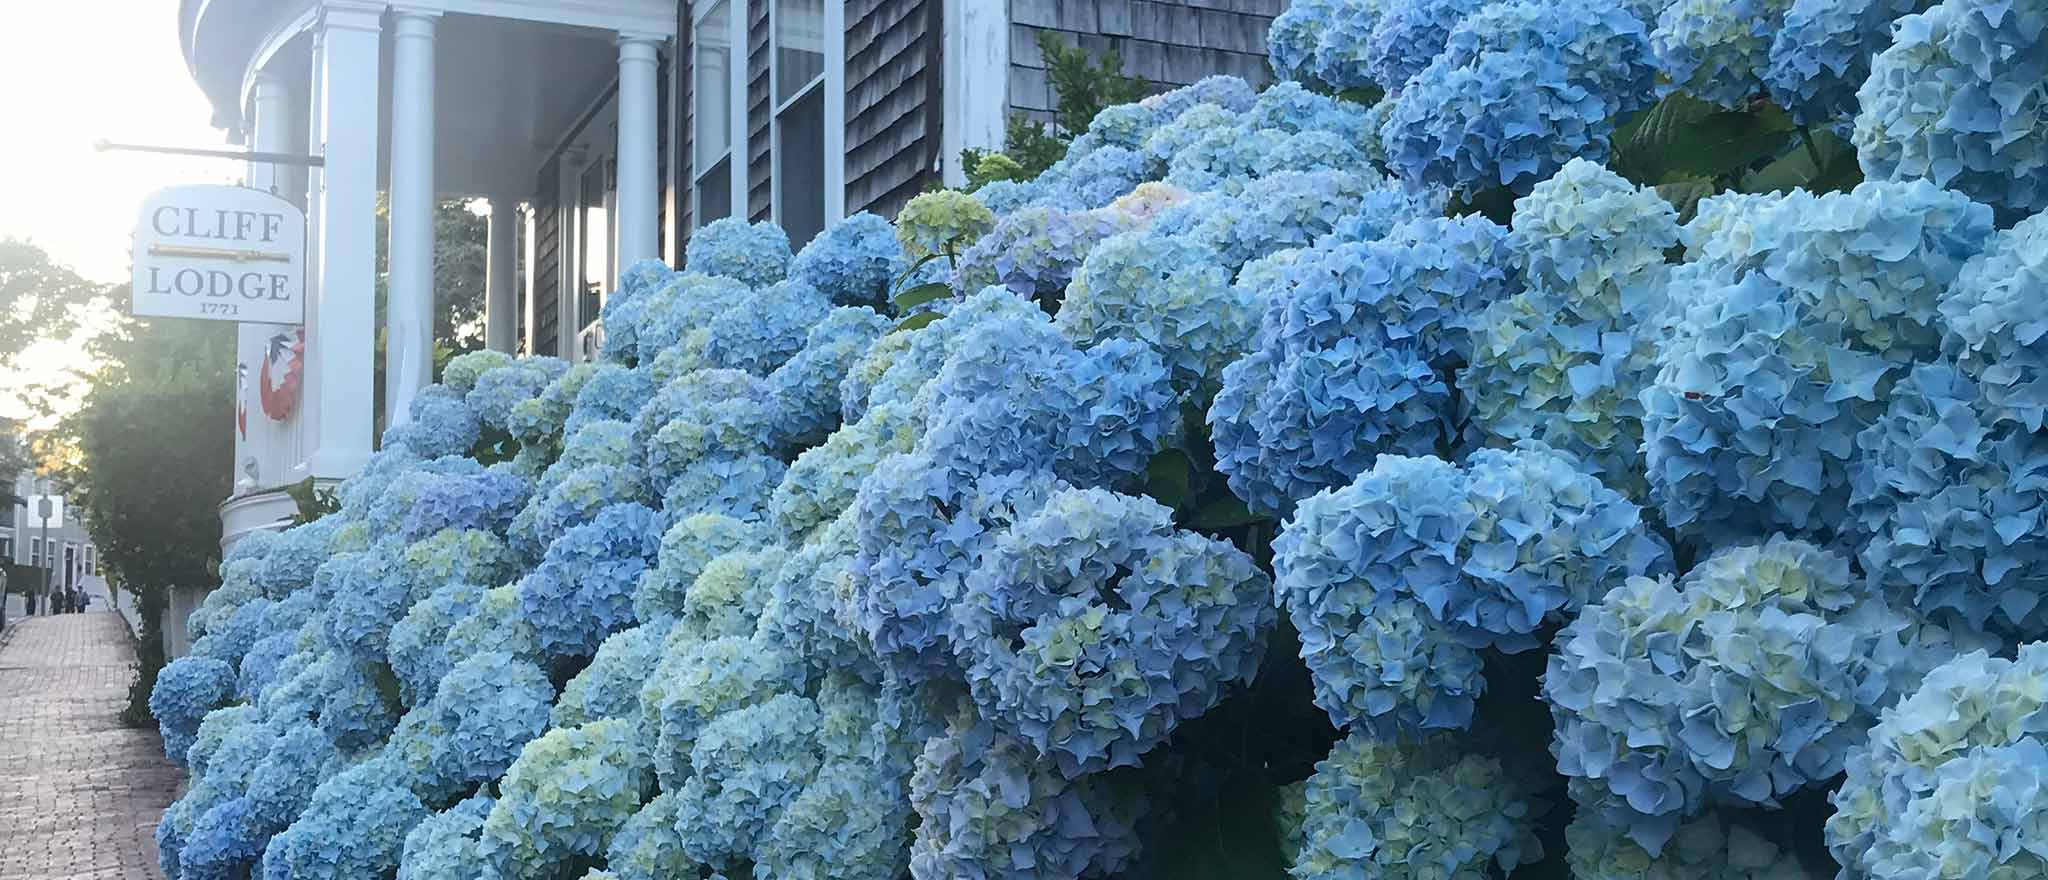 Blue Hydrangeas at the Cliff Lodge on Nantucket